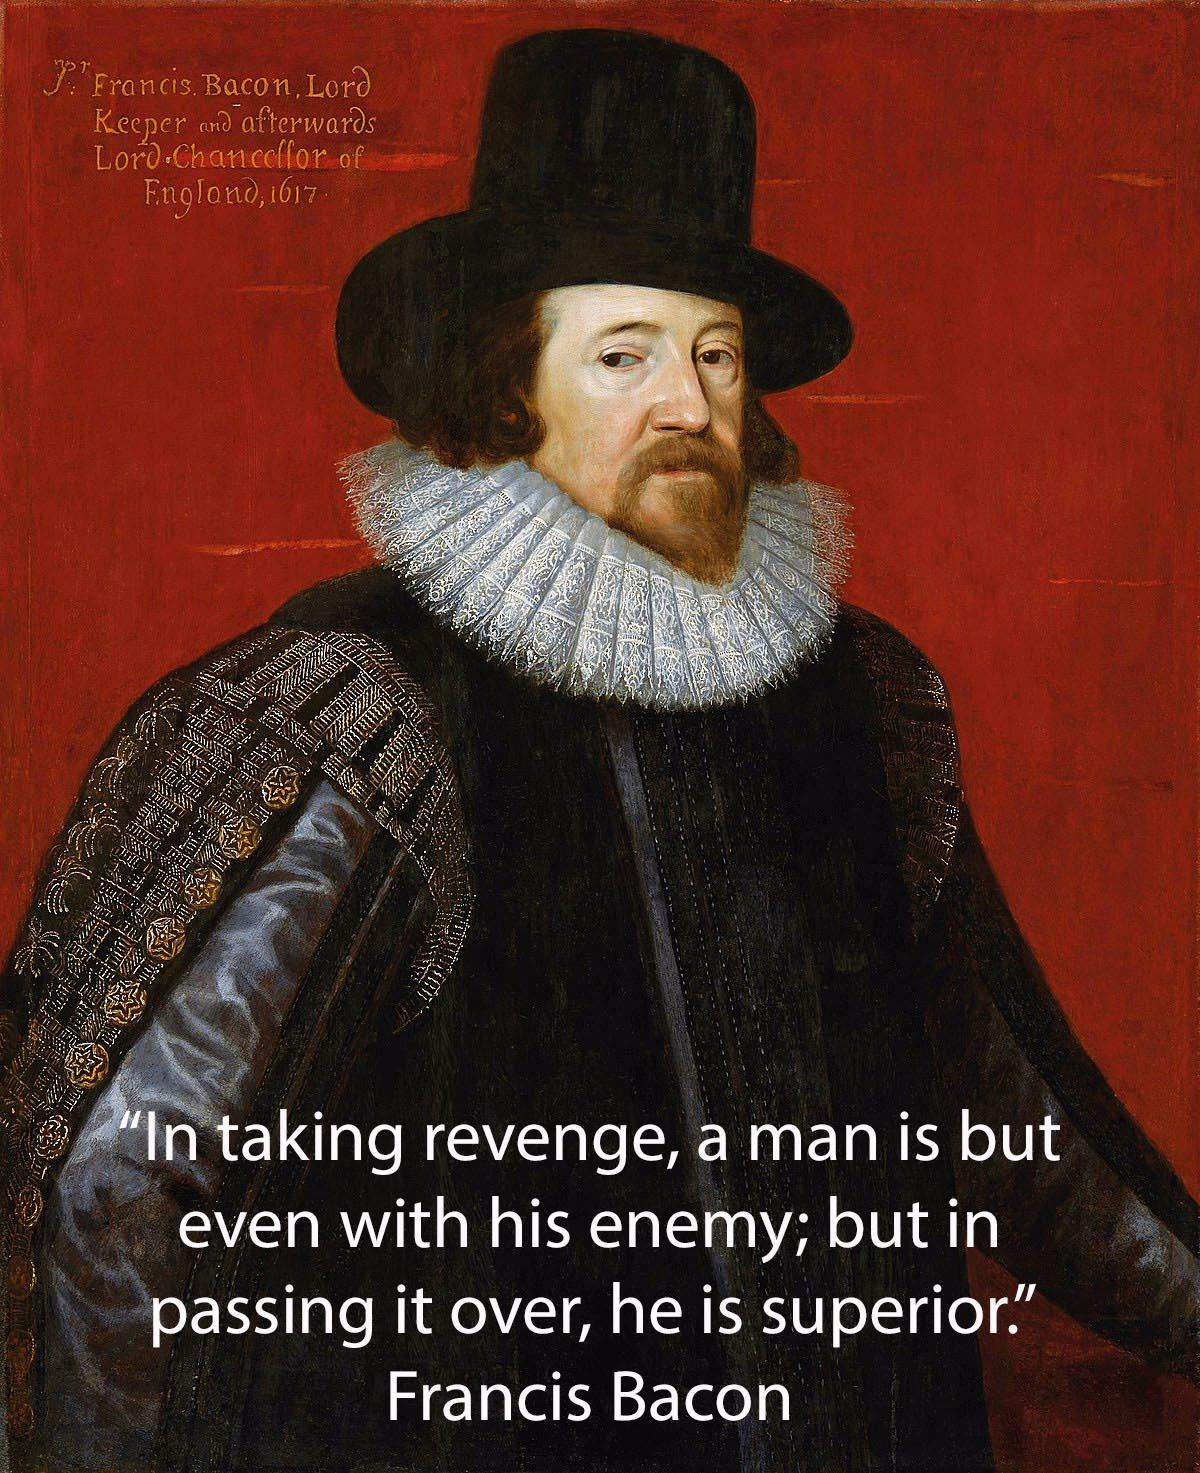 In taking revenge, a man is but even with his enemy; but in passing it over, he is superior. ~ Francis Bacon (1200×1473)